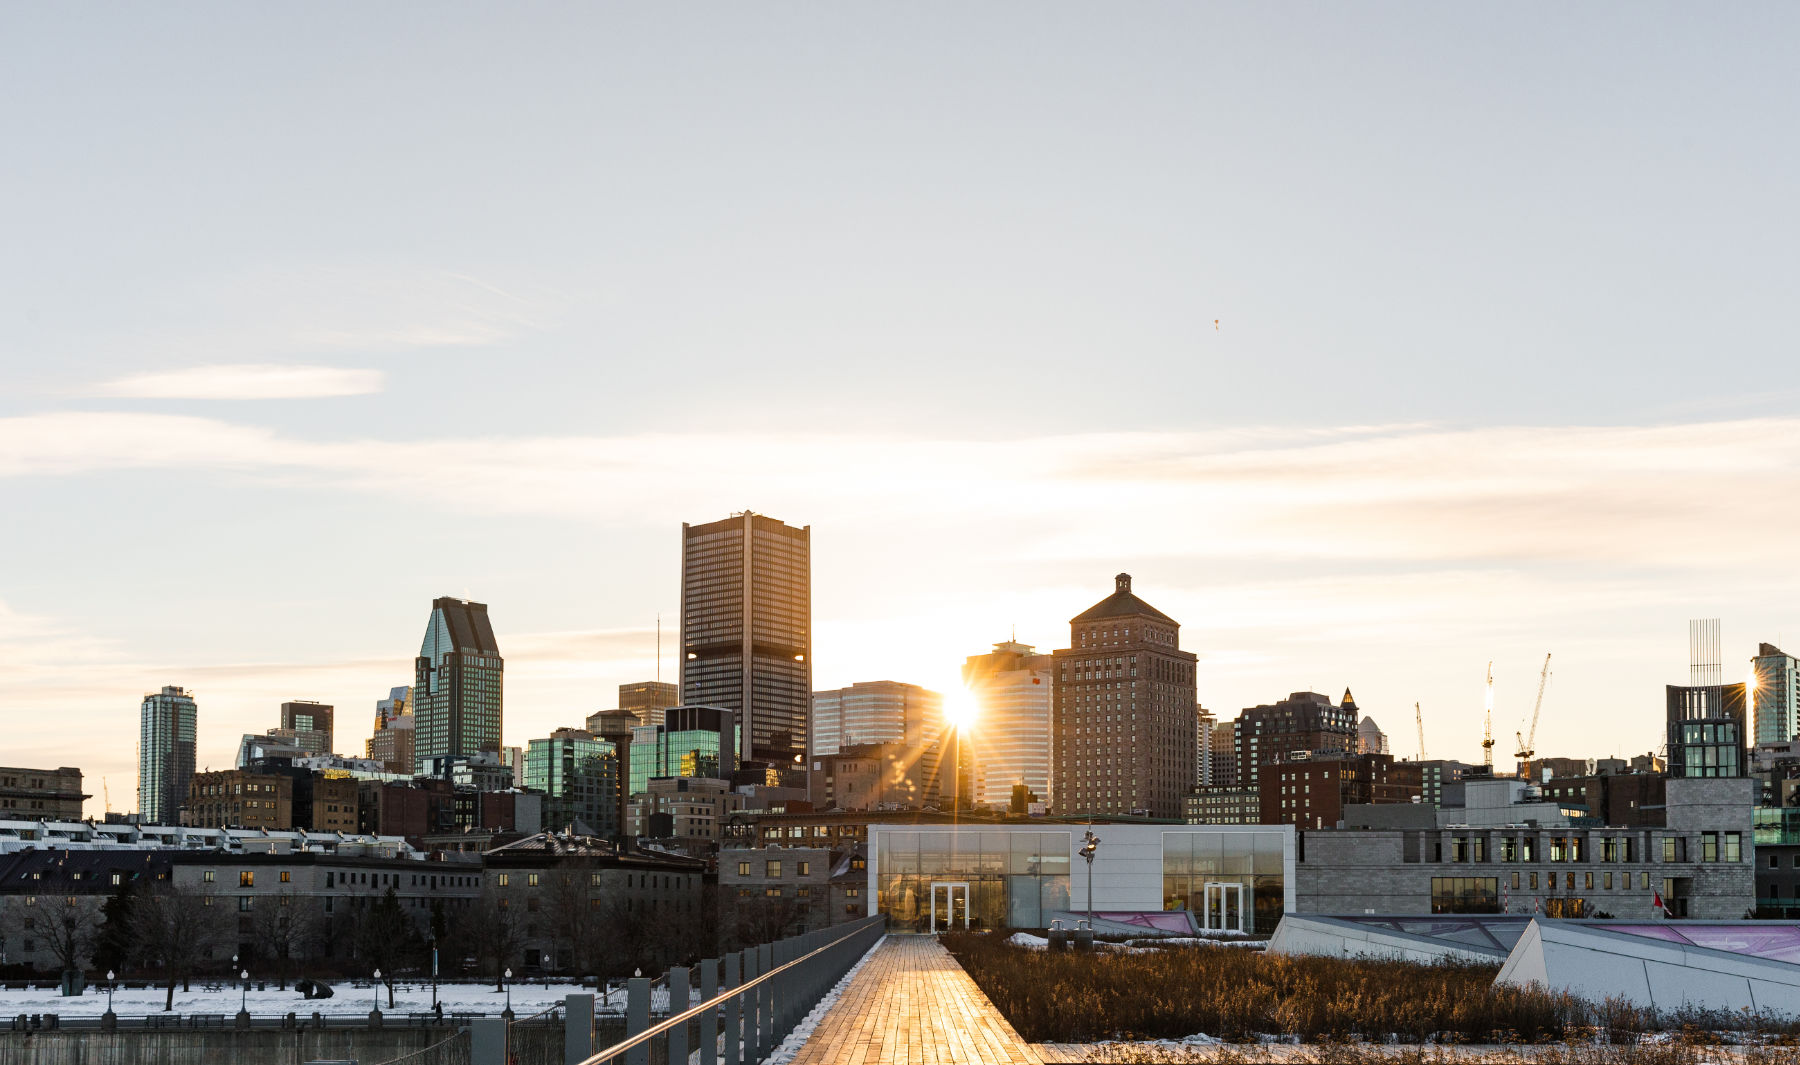 Urban landscape of the city of Montreal where Atoca products are handmade locally